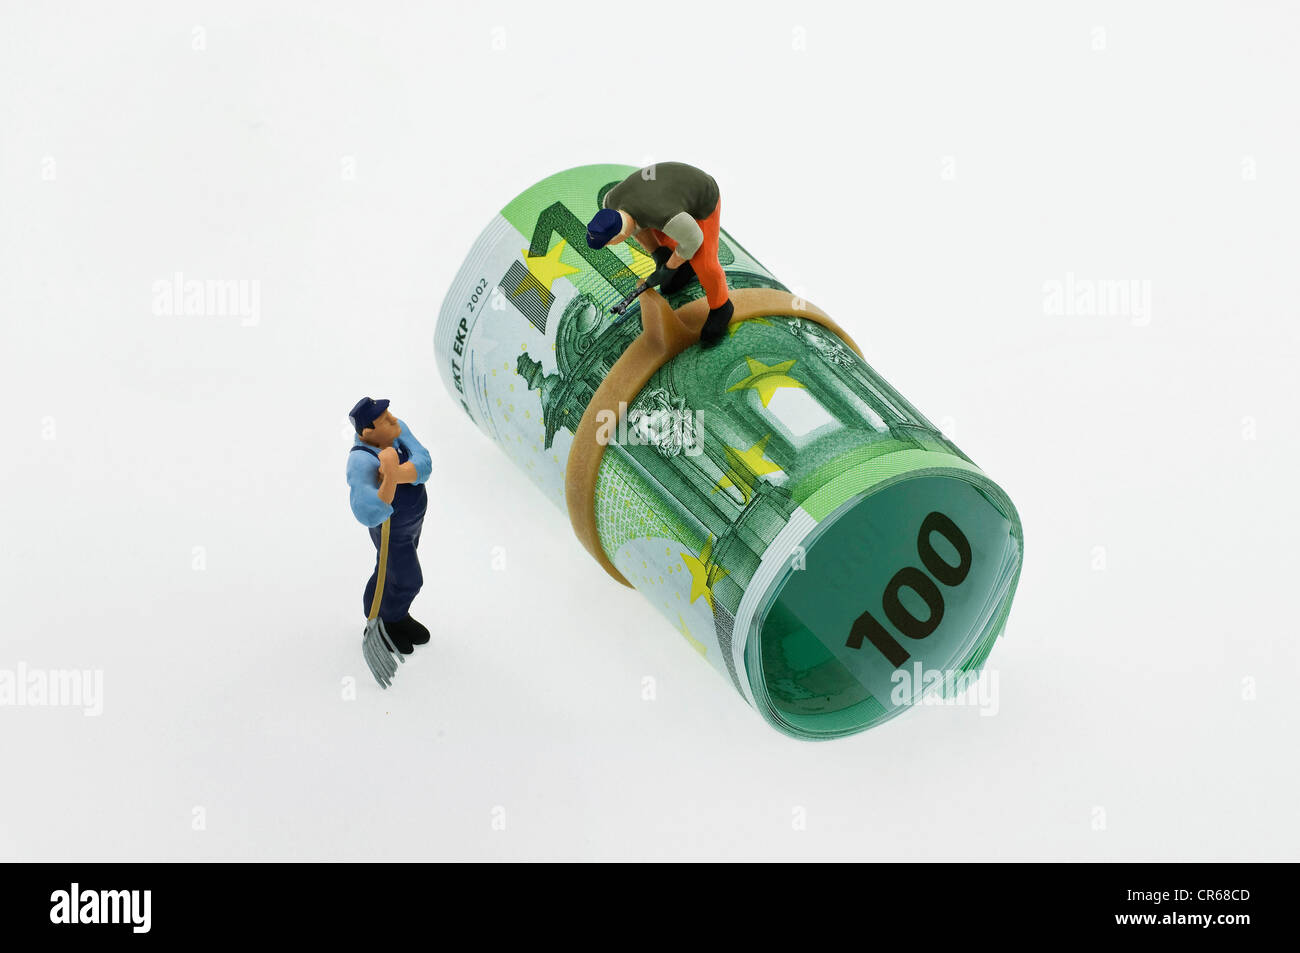 Two miniature figures of workmen, one using a tool on a roll of 100-euro notes, the second one looking up towards - Stock Image